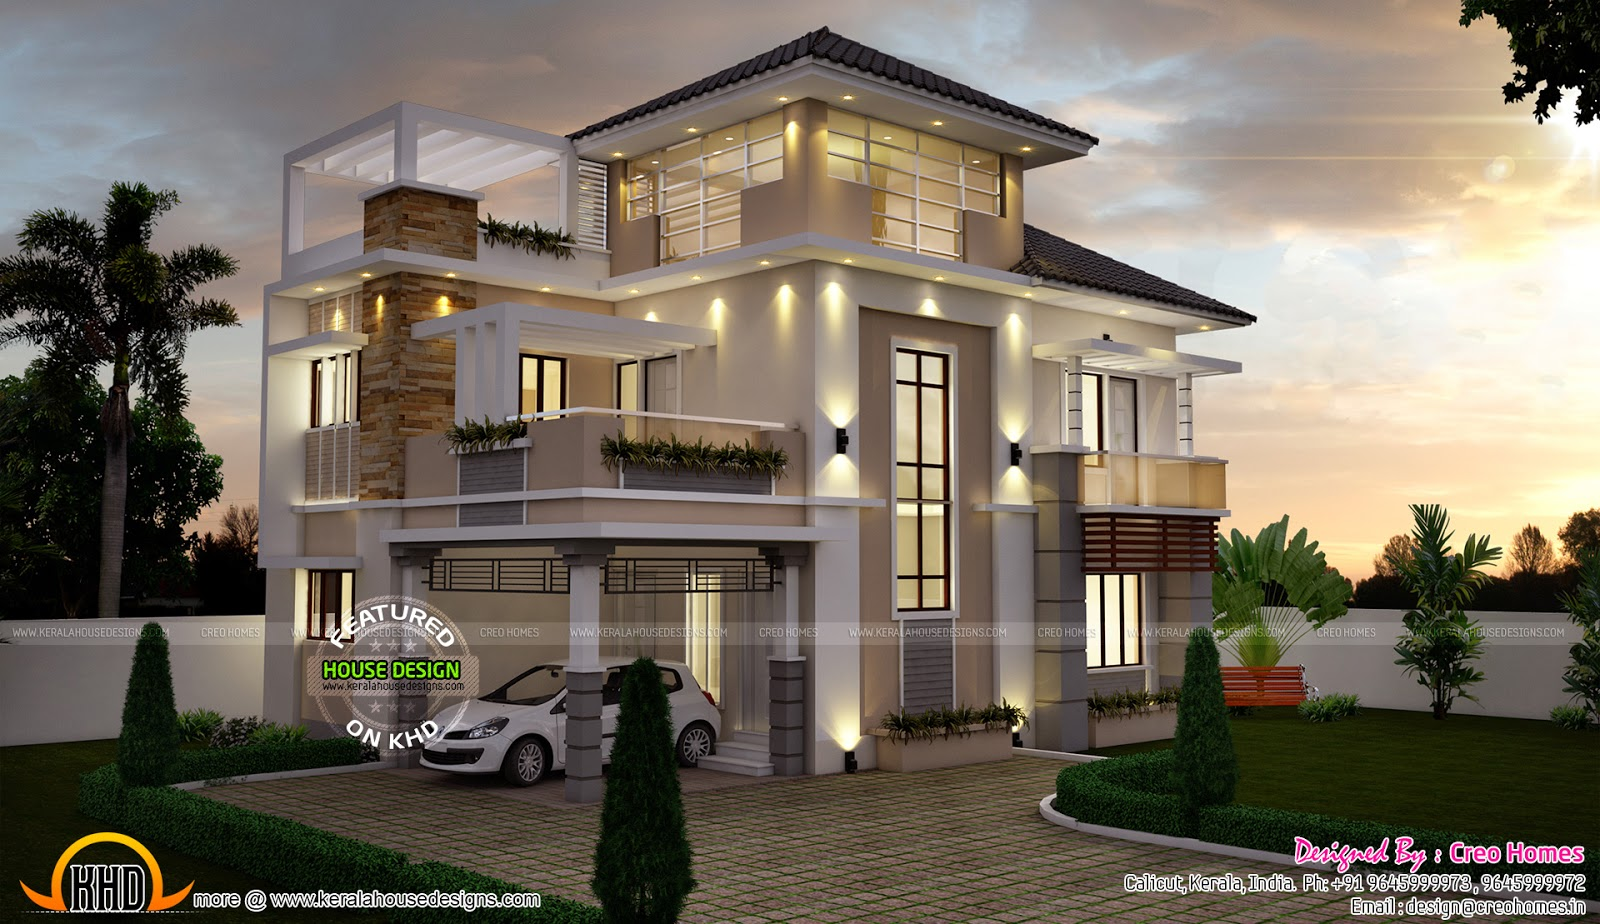 Super stylish contemporary house kerala home design and for Modern house designs and floor plans in india